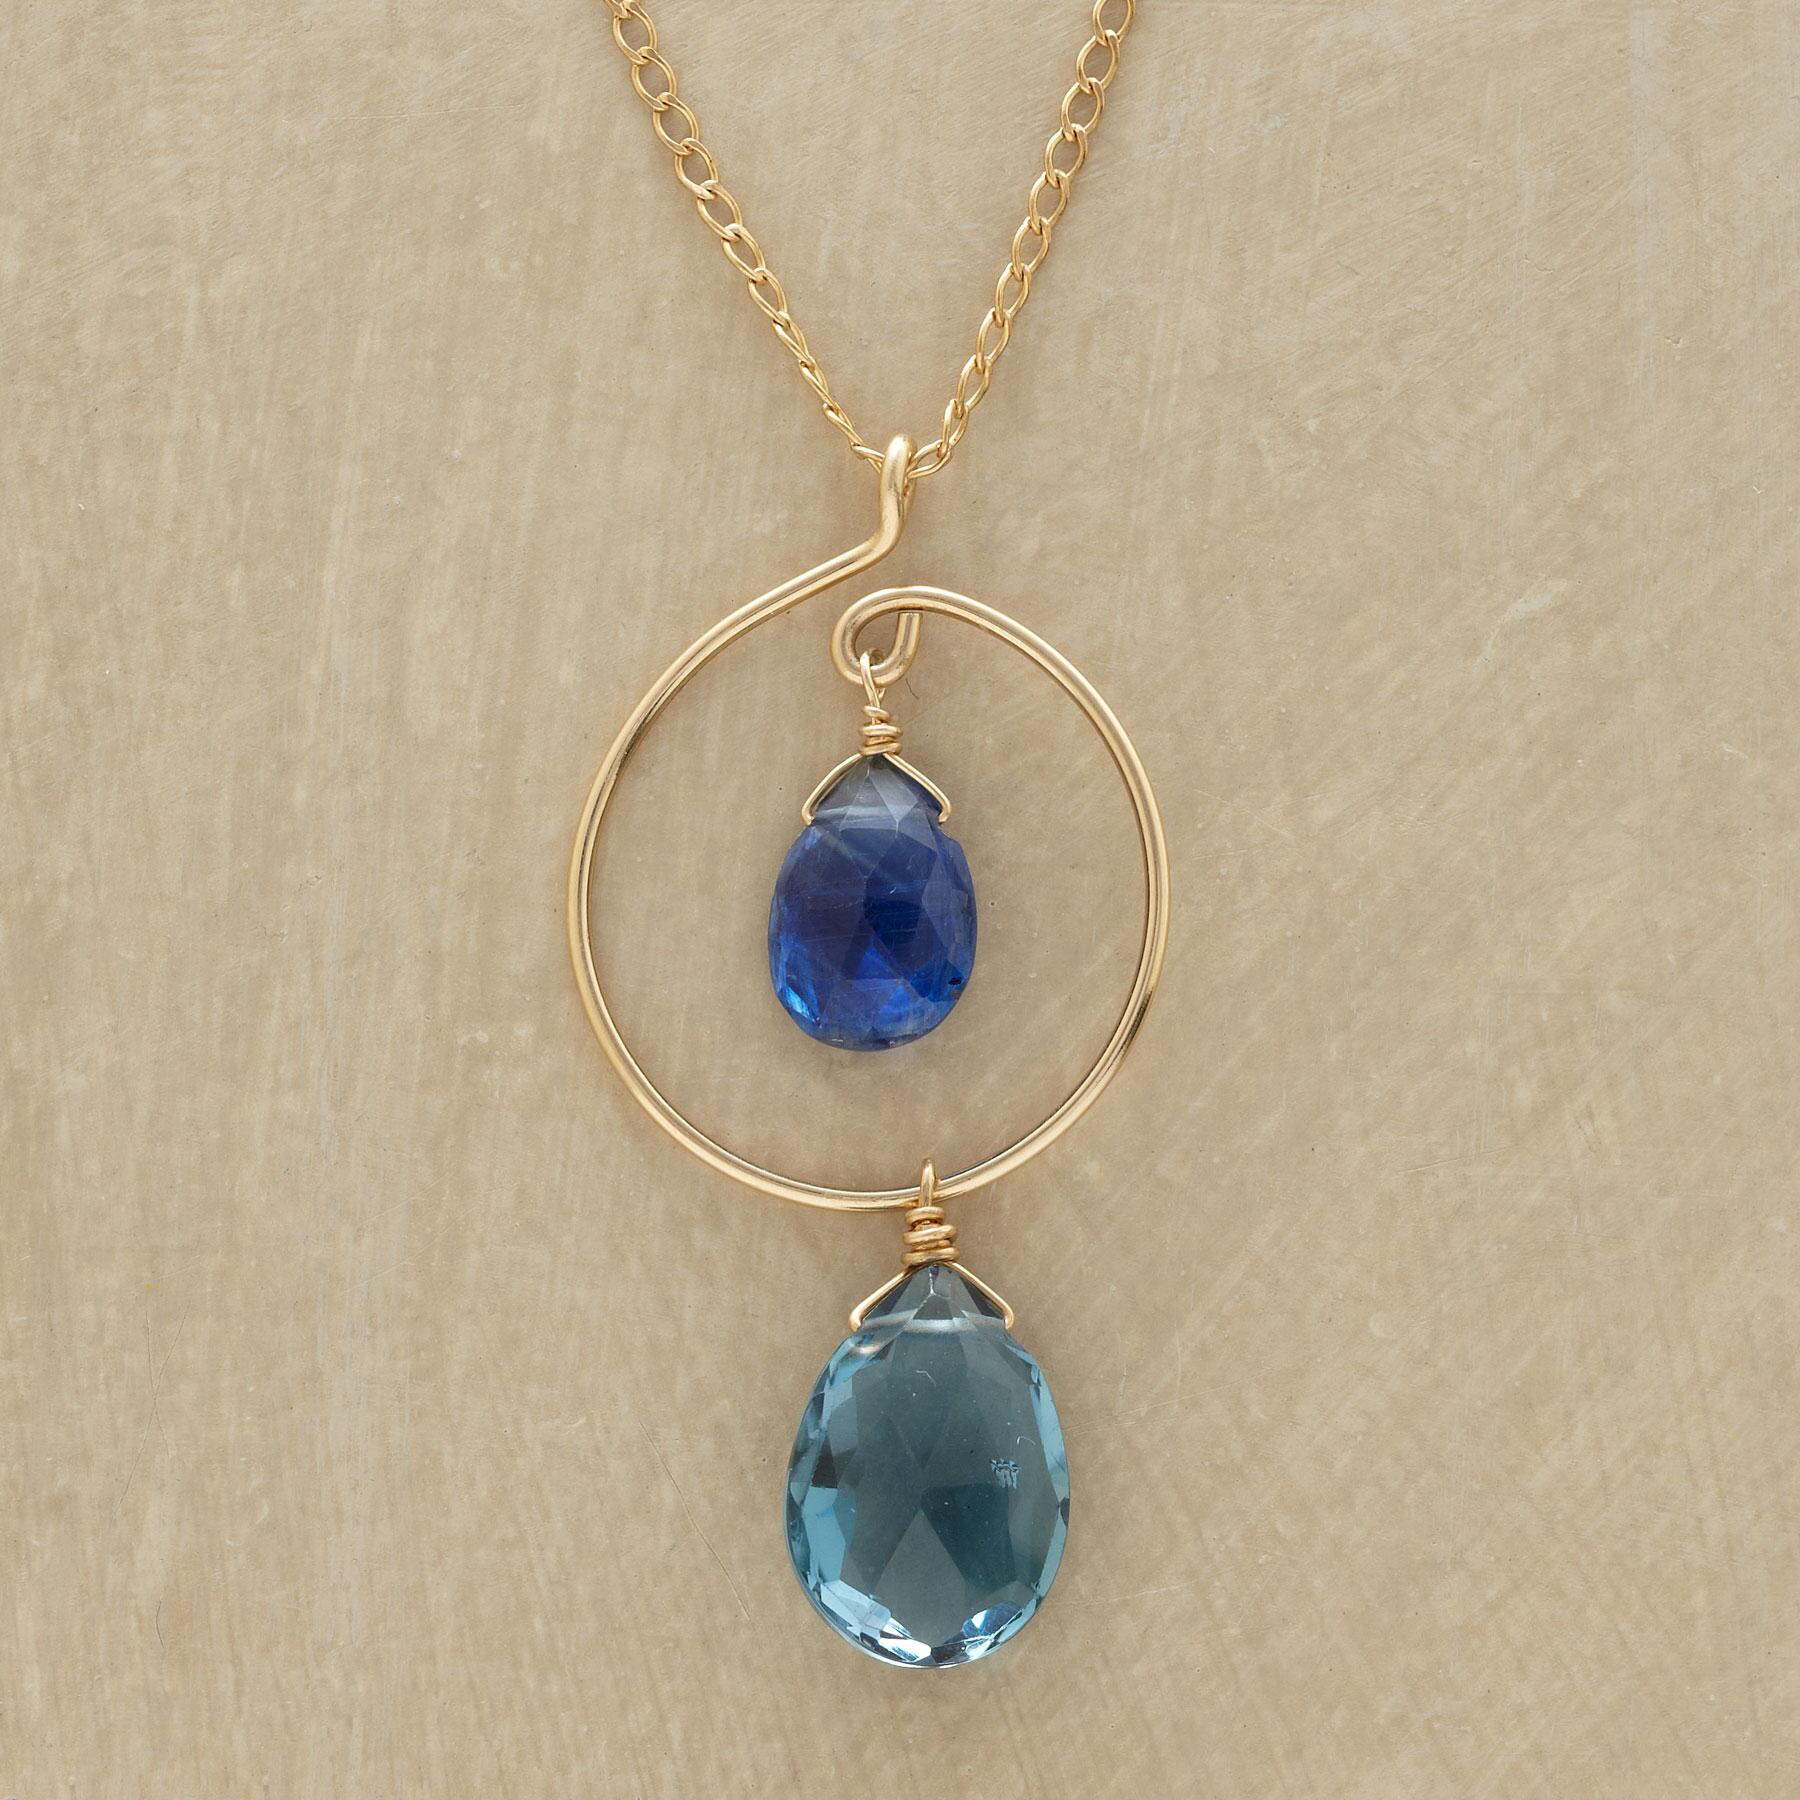 TWO SOULS NECKLACE: View 1